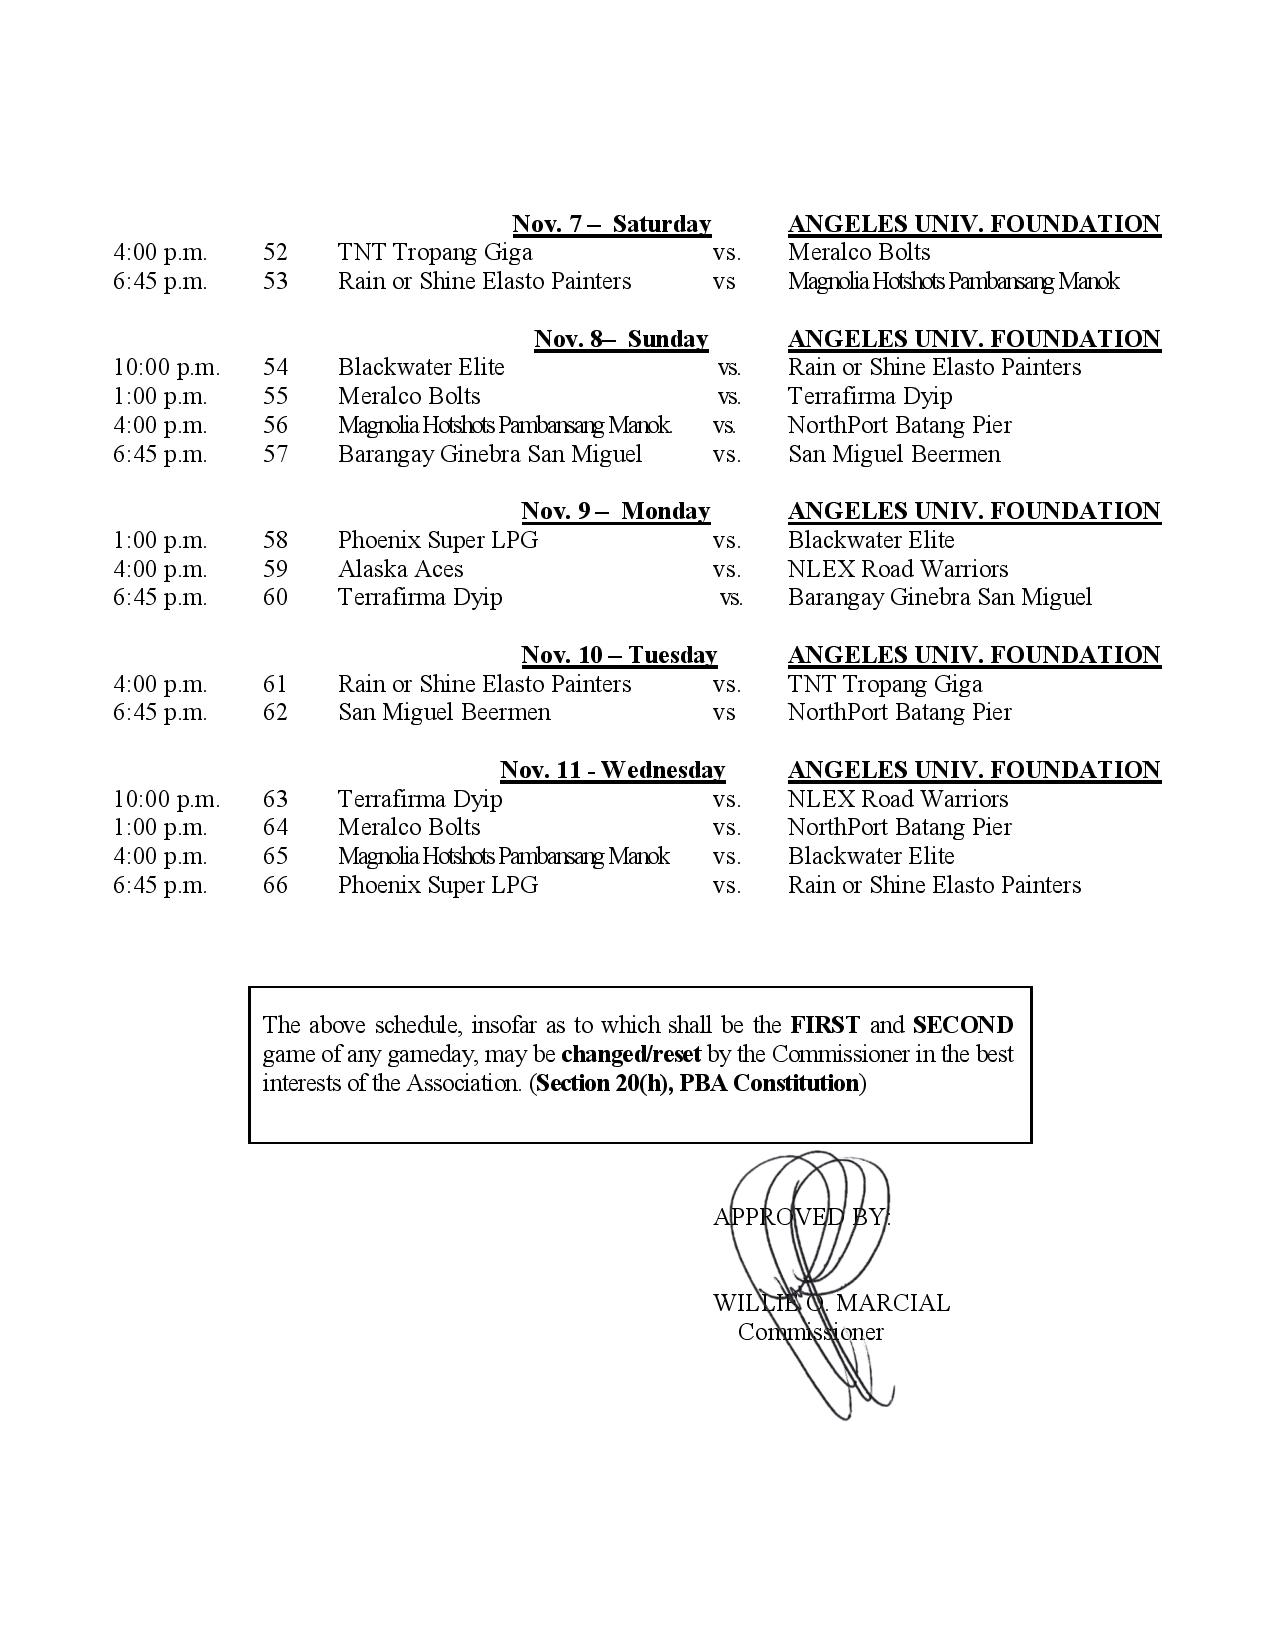 PBA-Season-45-revised-sched-2 Five quadruple-headers added to compressed PBA bubble sched Basketball News PBA  - philippine sports news